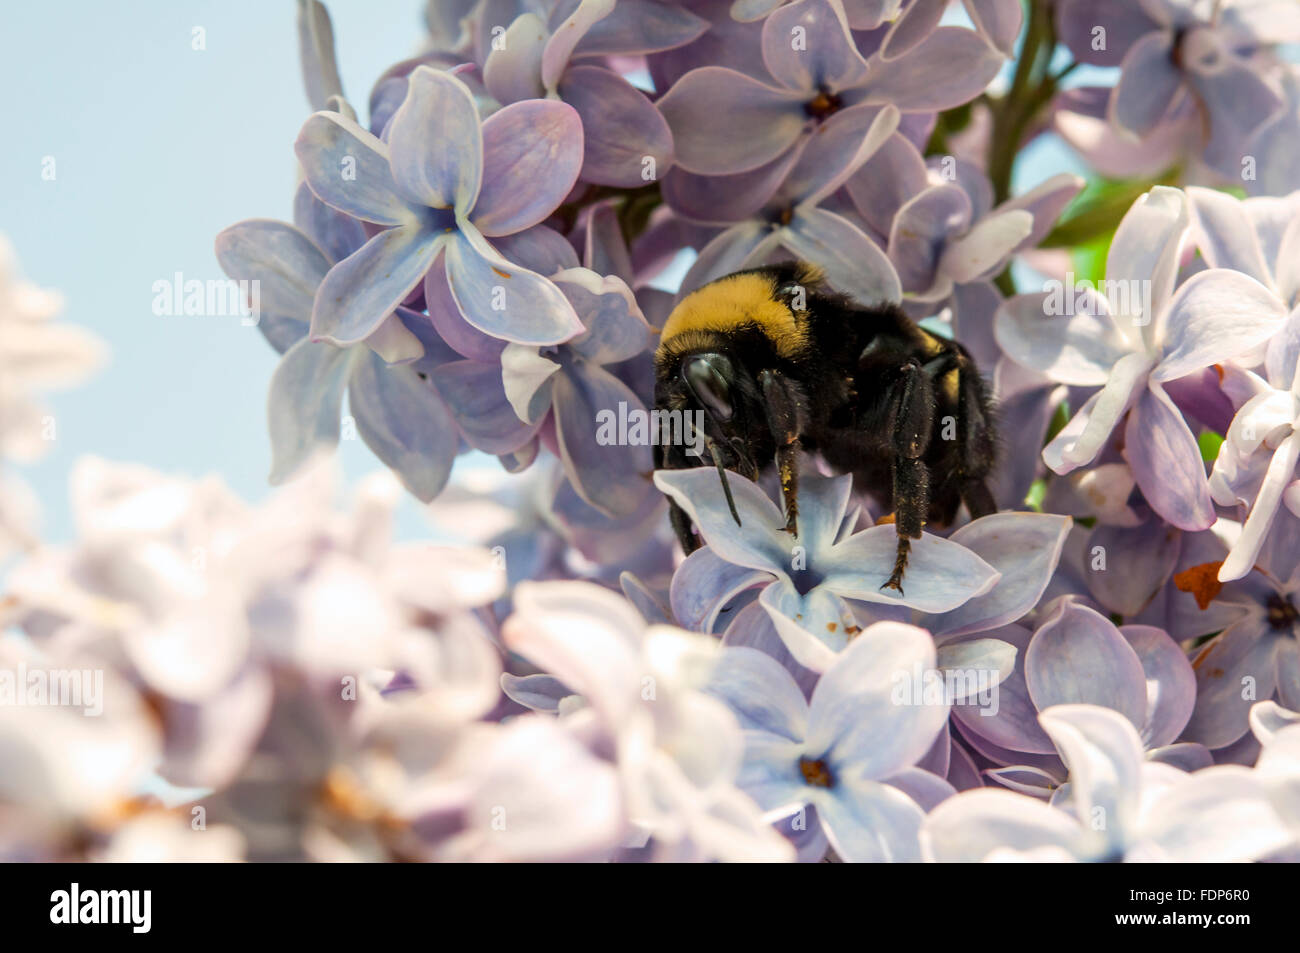 Bumble bee pollinating Lilac blooms - Stock Image